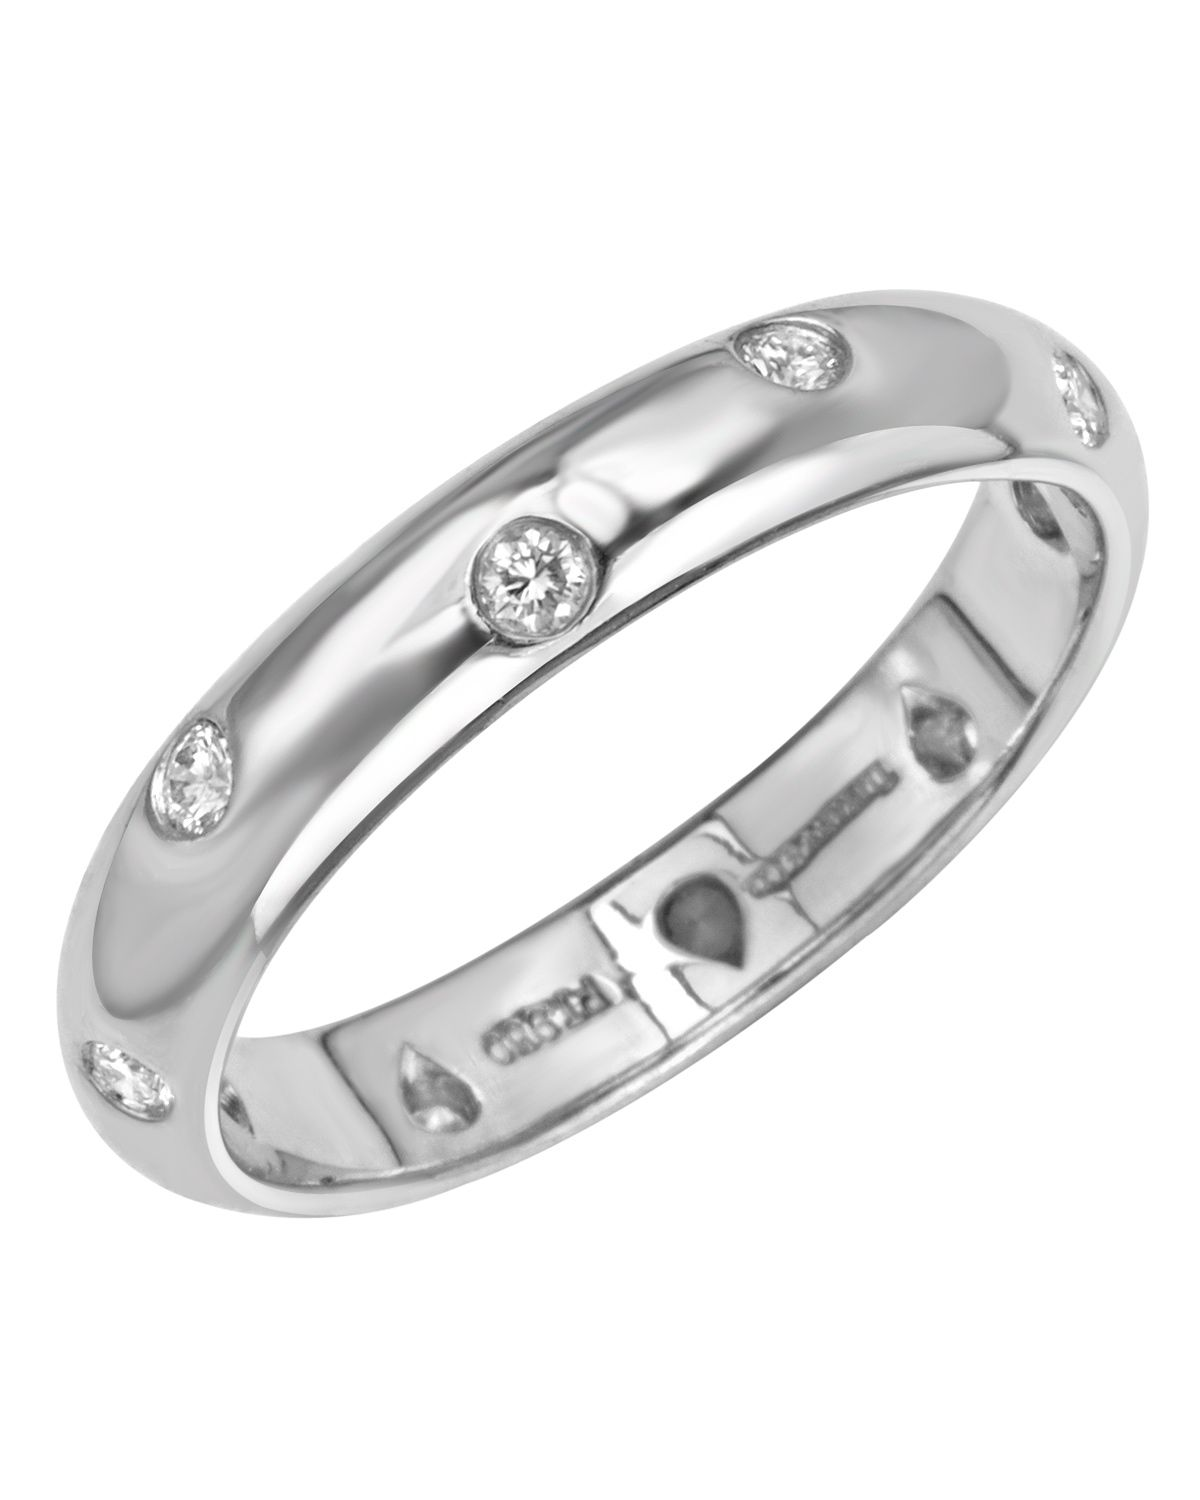 rings patsveg com with diamonds diamond of wedding year anniversary bands real togeteher